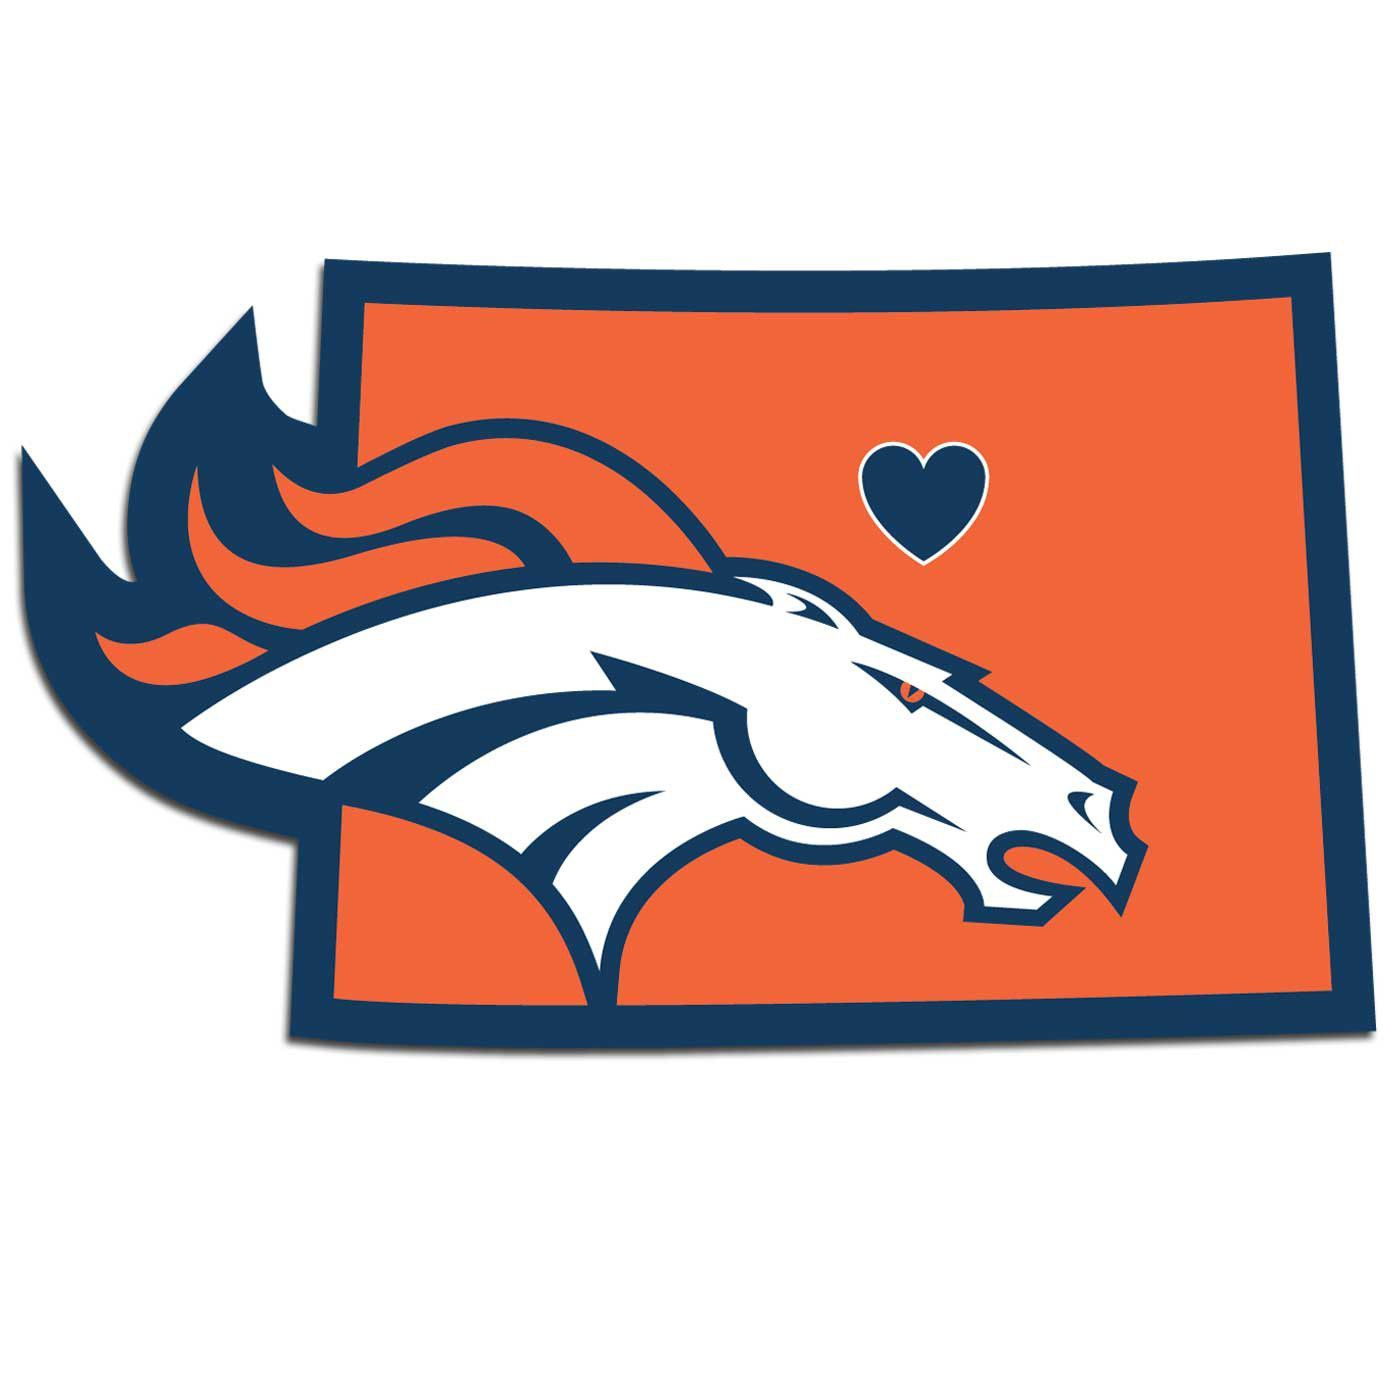 1400x1400 It's A Home State Decal With A Sporty Twist! This Denver Broncos